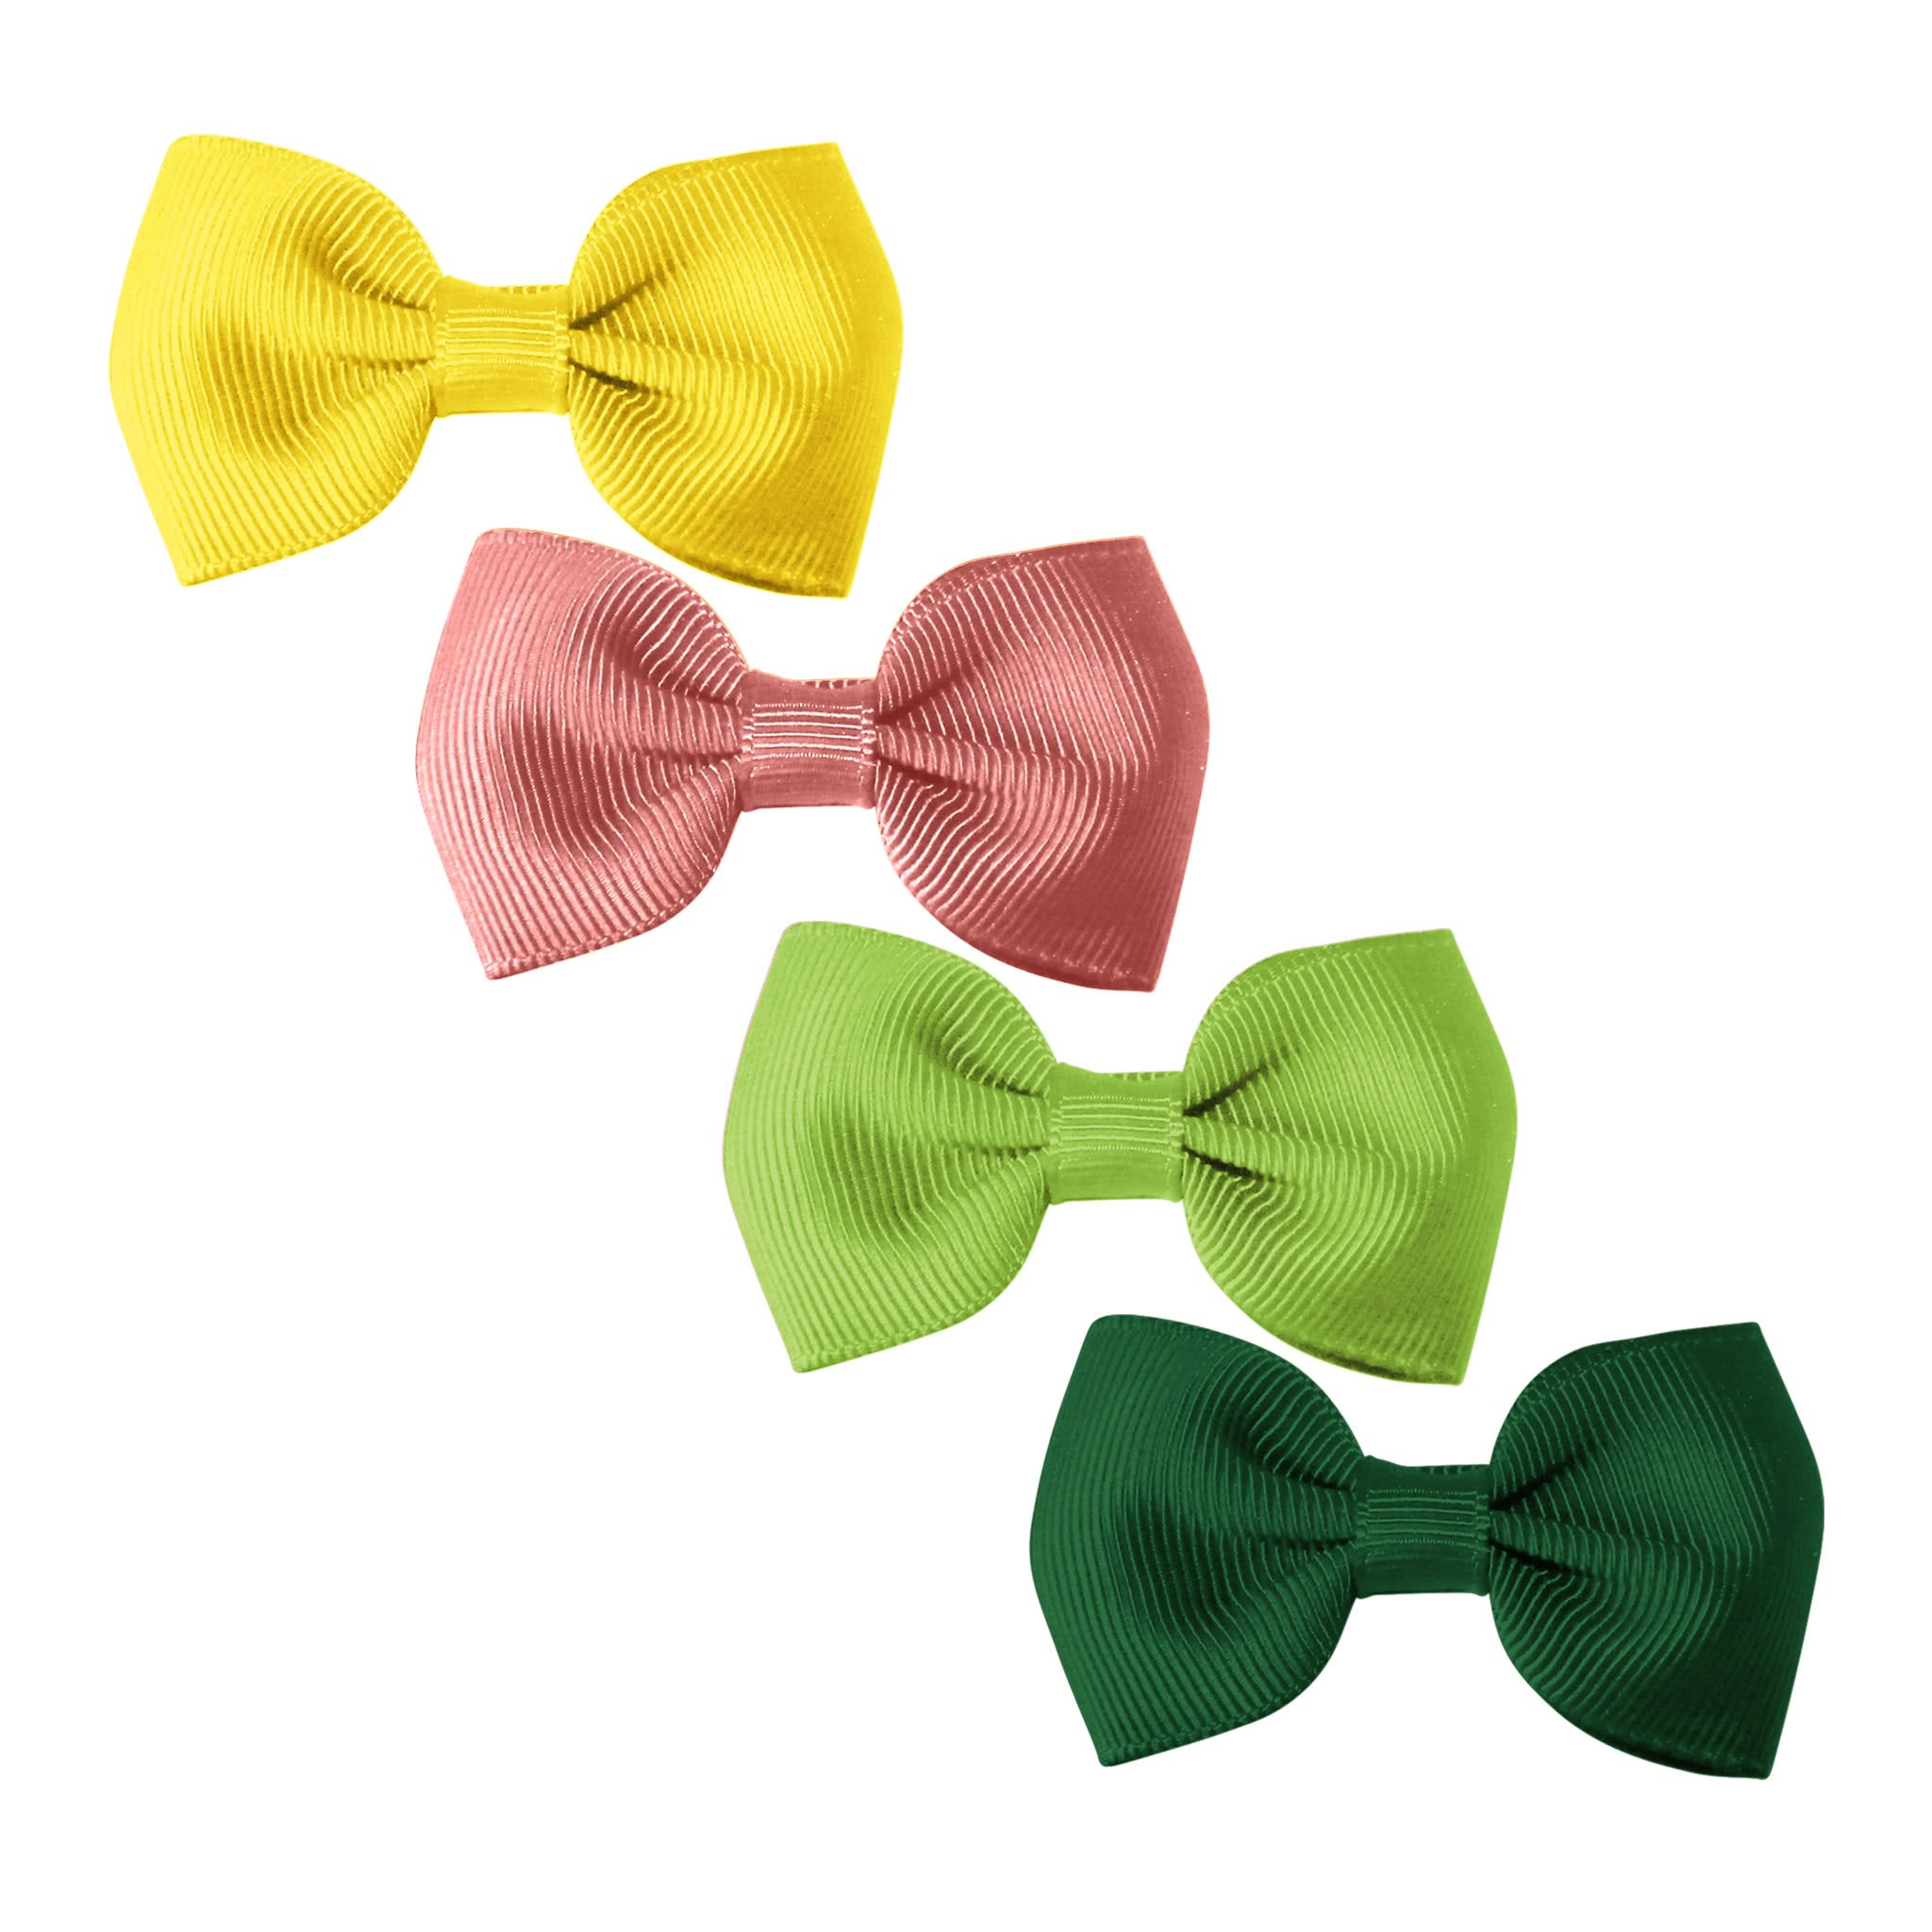 Image of Milledeux® Gift set - 4 Small bowtie bows - alligator clip - yellow/rose/green